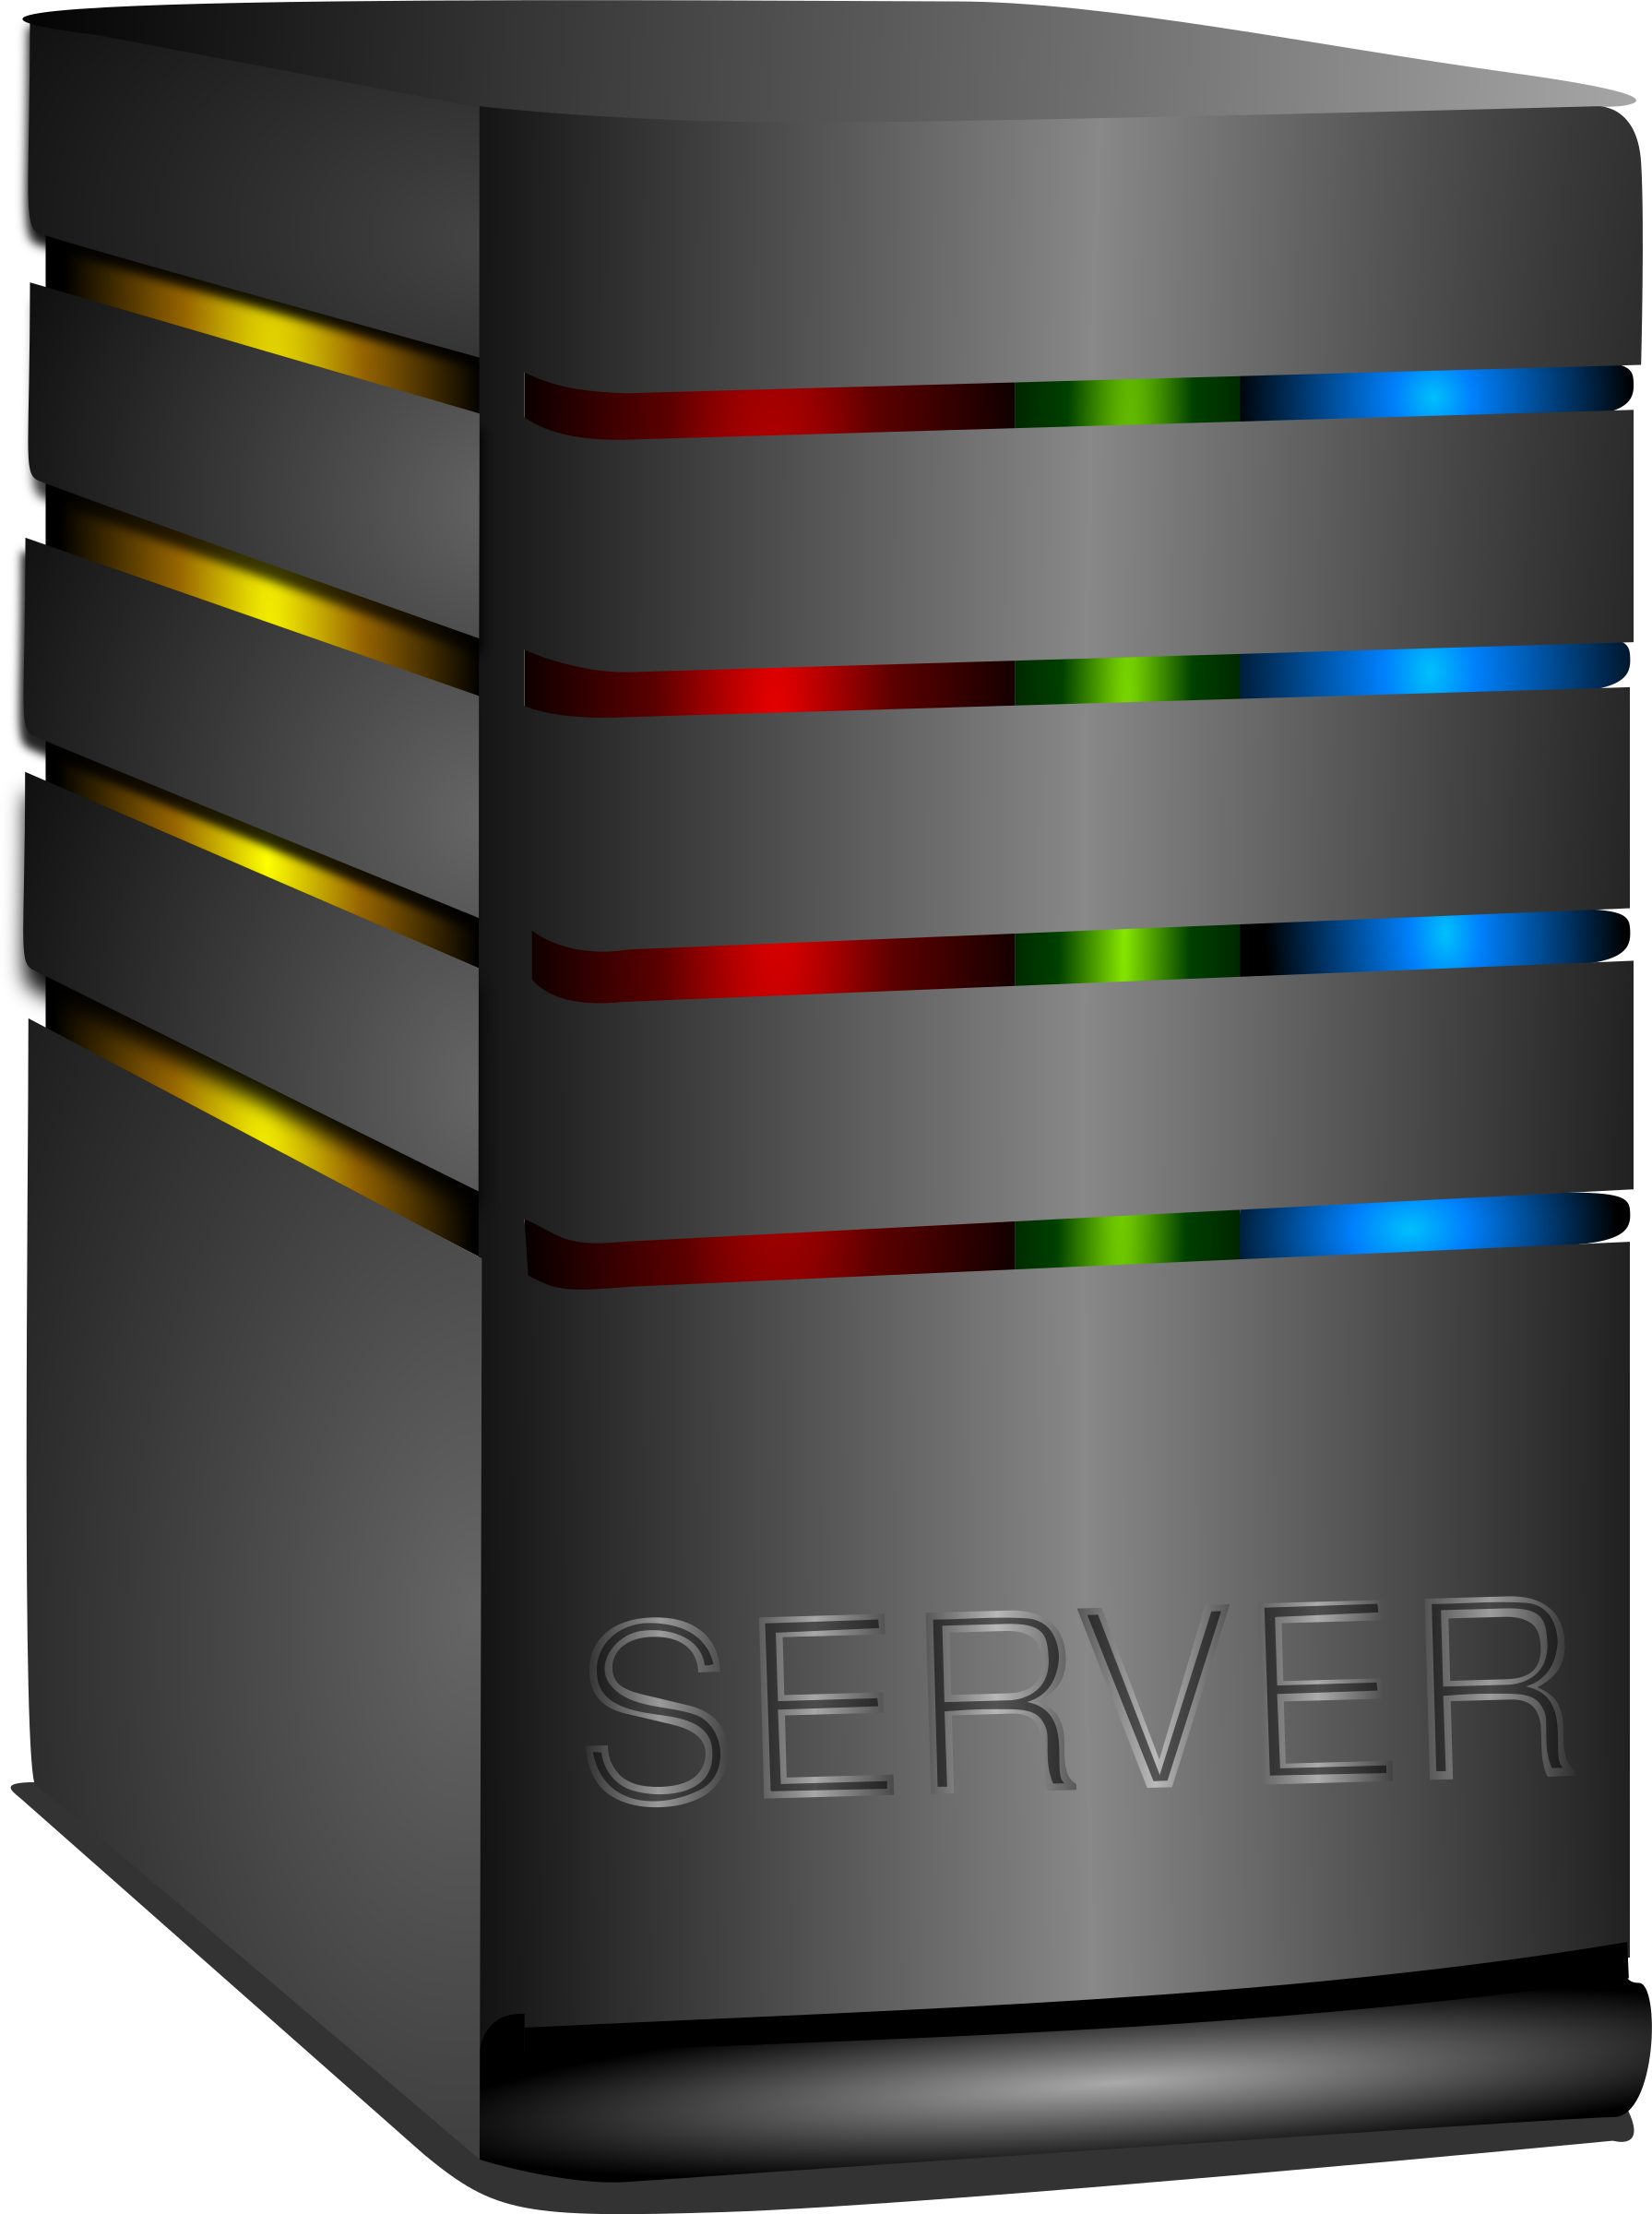 Ibm server clipart image transparent library Free Server Cliparts, Download Free Clip Art, Free Clip Art ... image transparent library